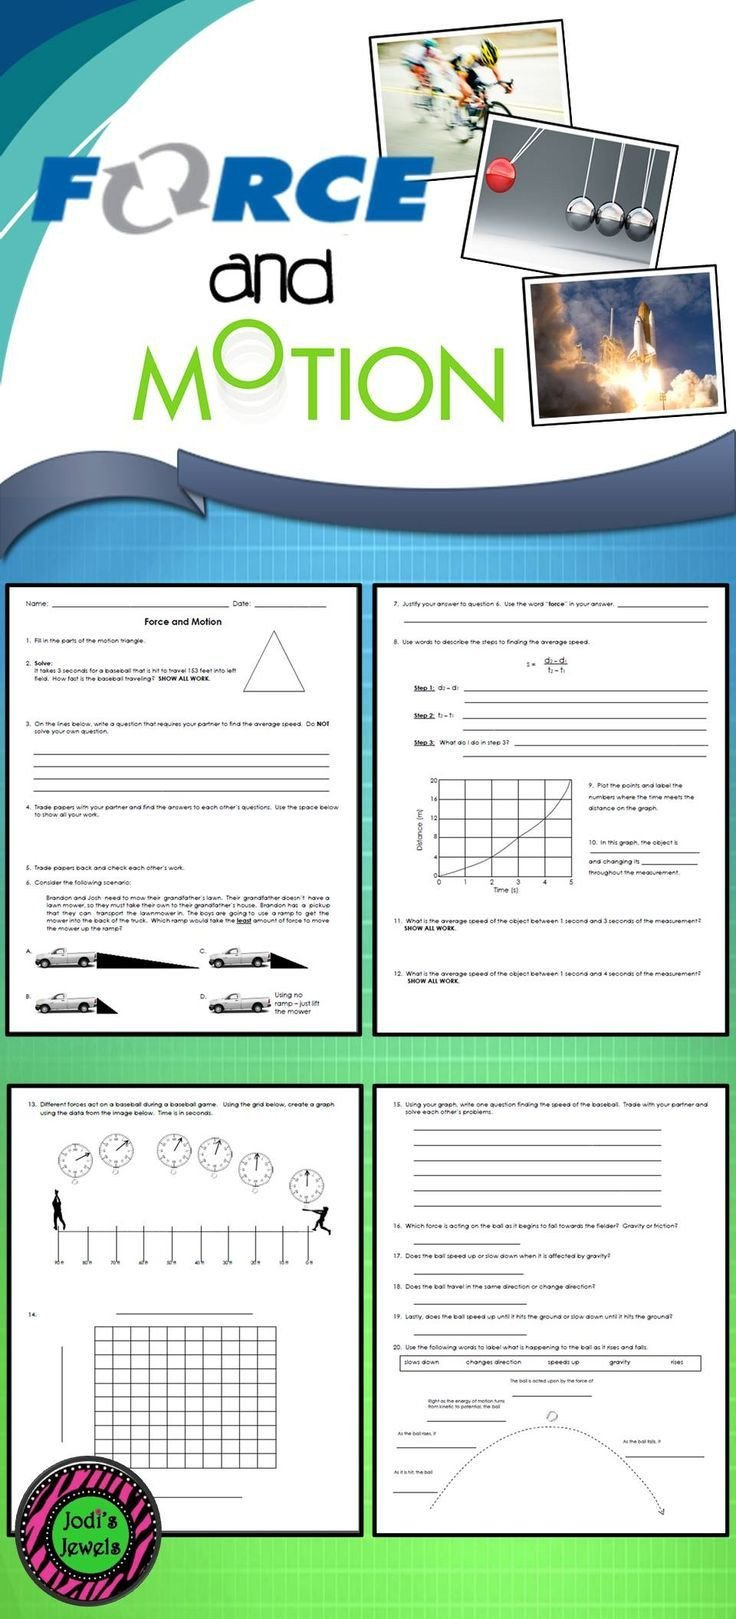 Force Motion and Energy Worksheets force and Motion Ws 2